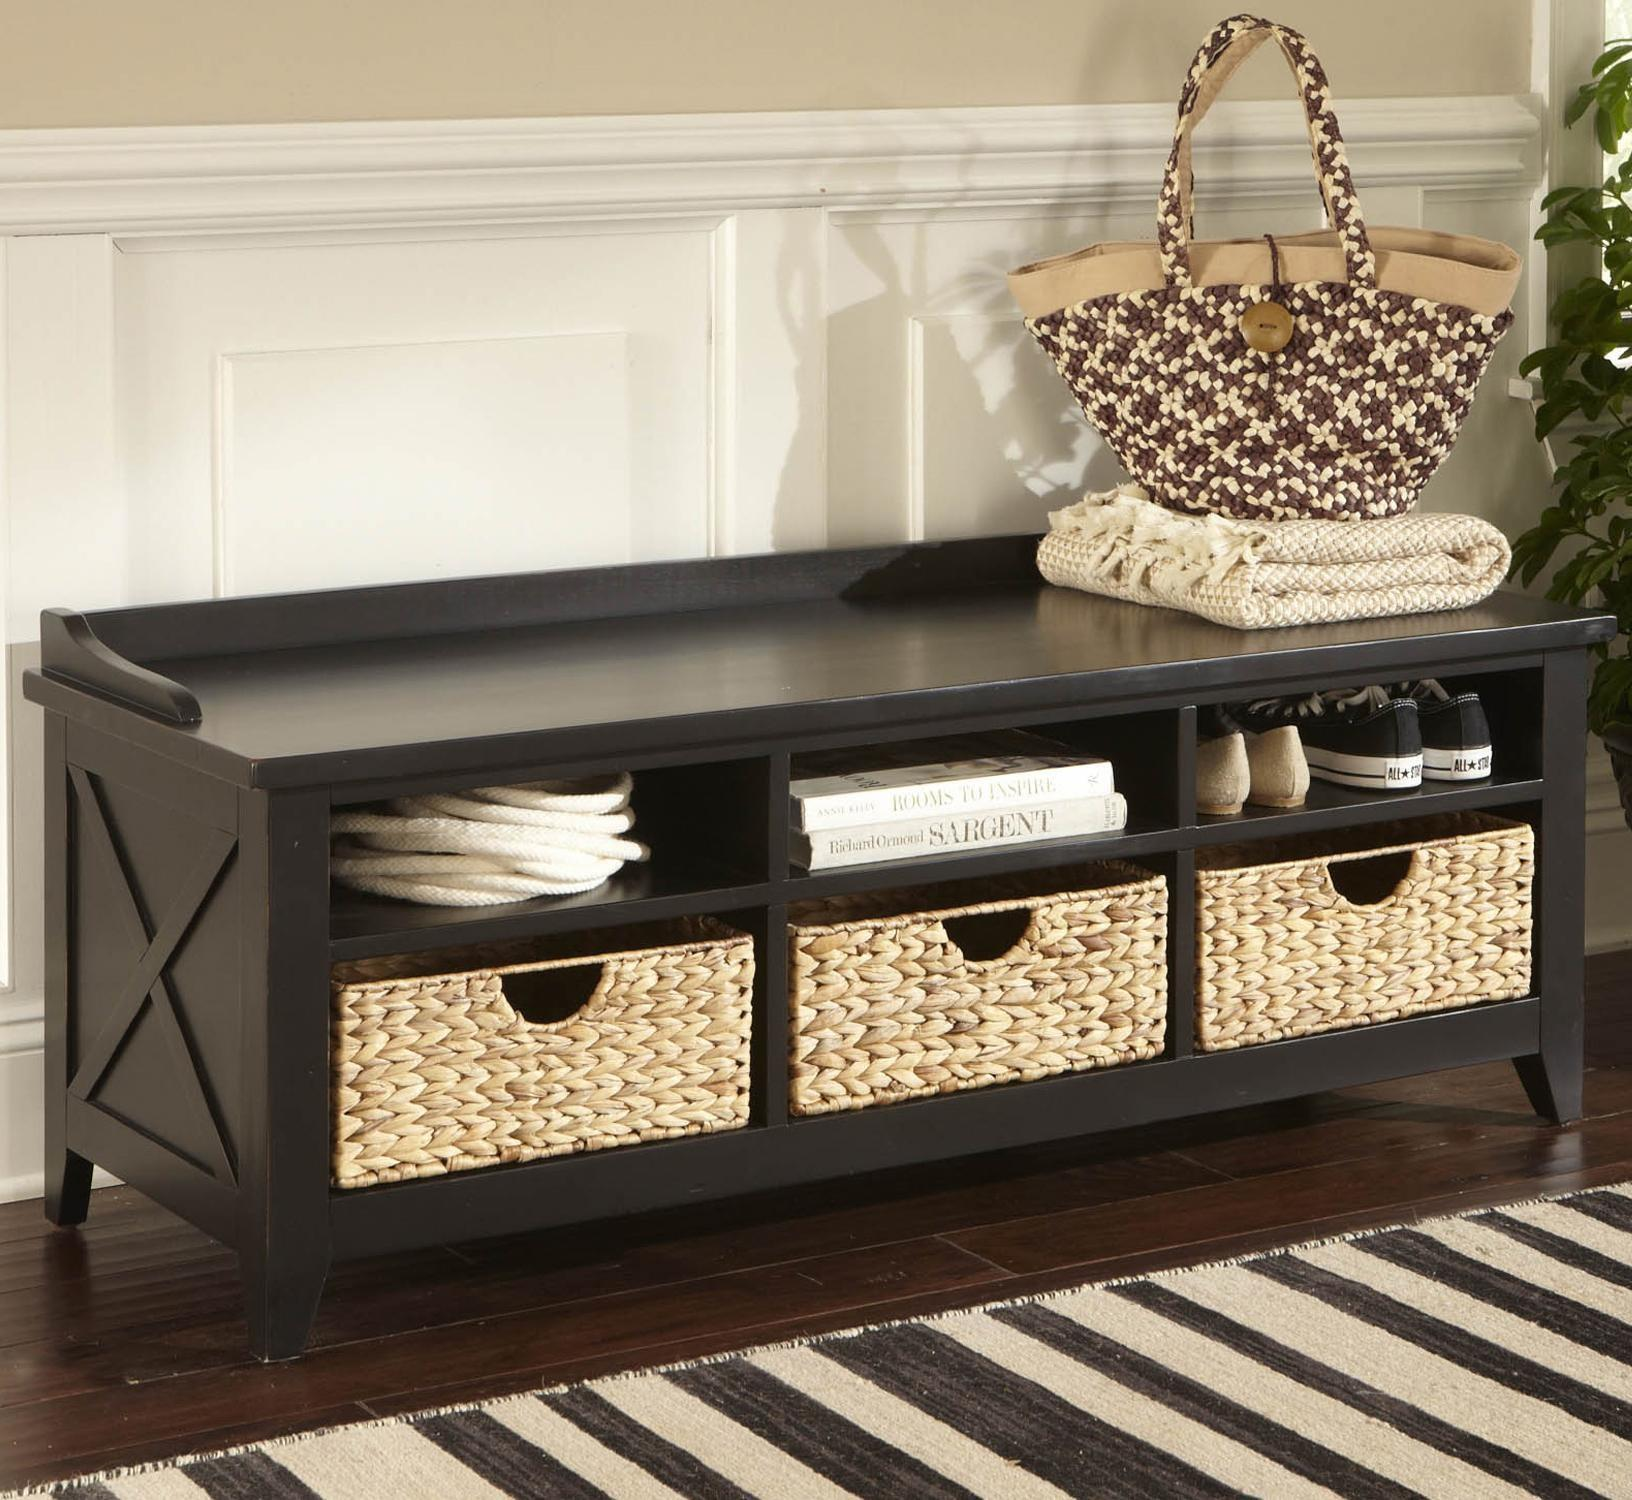 Entryway Storage Bench Best Design 2017